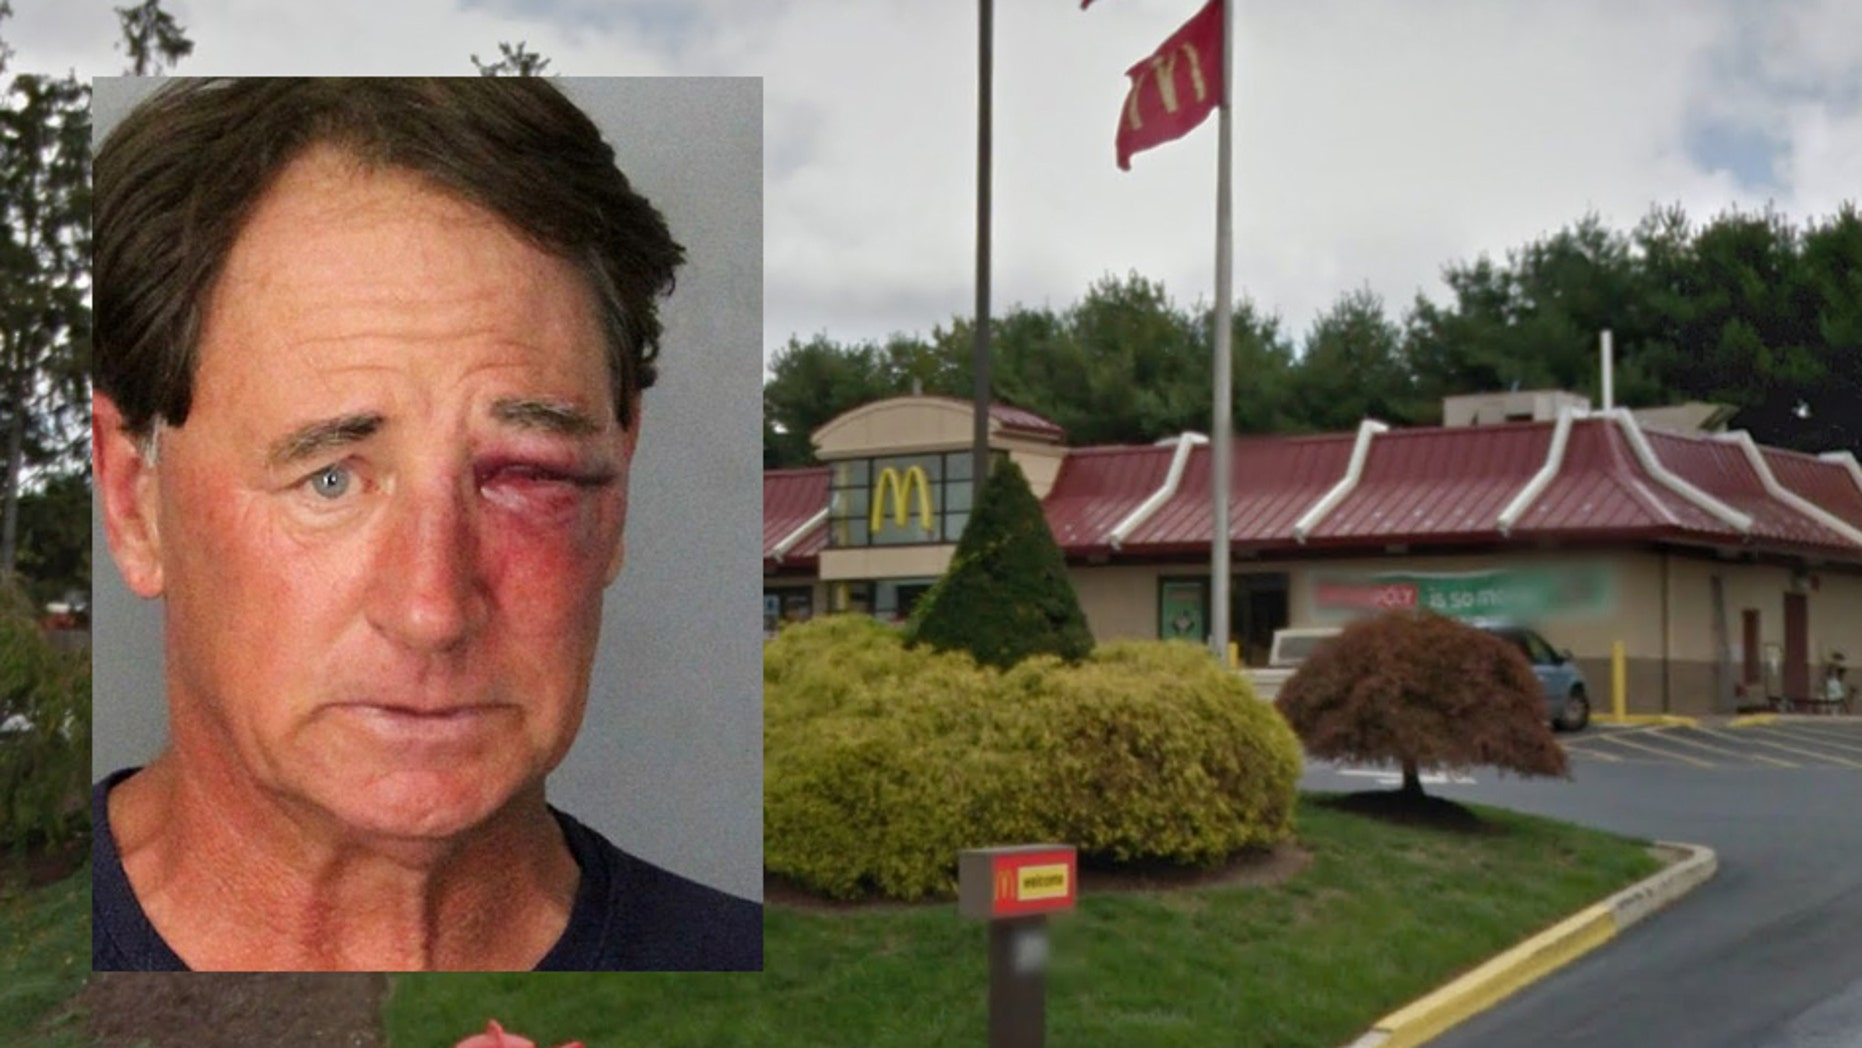 Police say Stephen Mikulcik, of Newark, Del., attacked several people at the McDonald's following an altercation with a woman and her boyfriend.